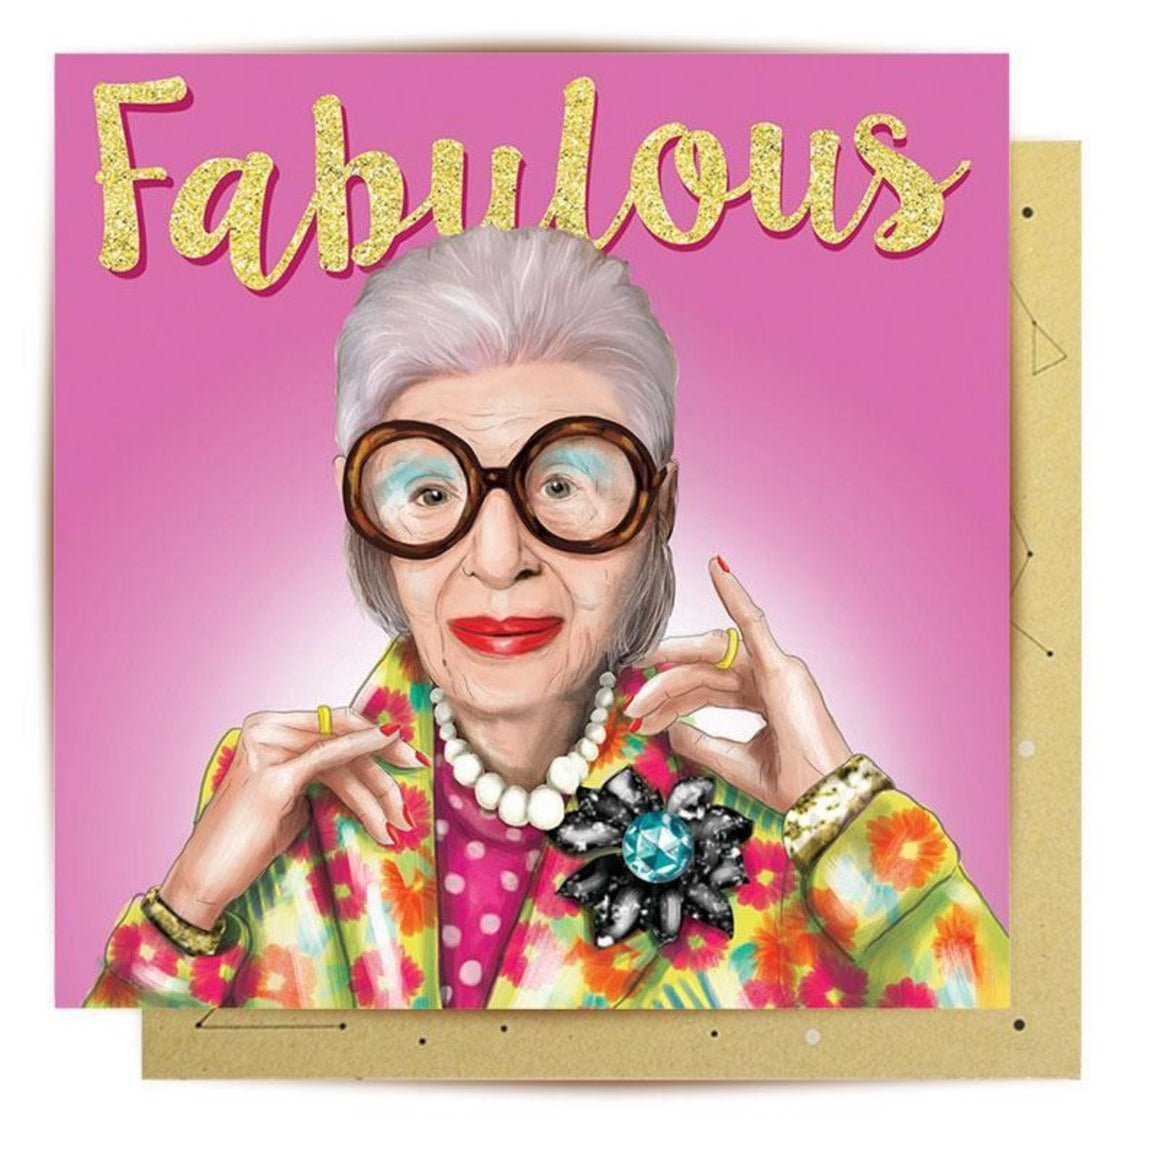 Greeting Card featuring illustration of iris apfel and the word Fabulous